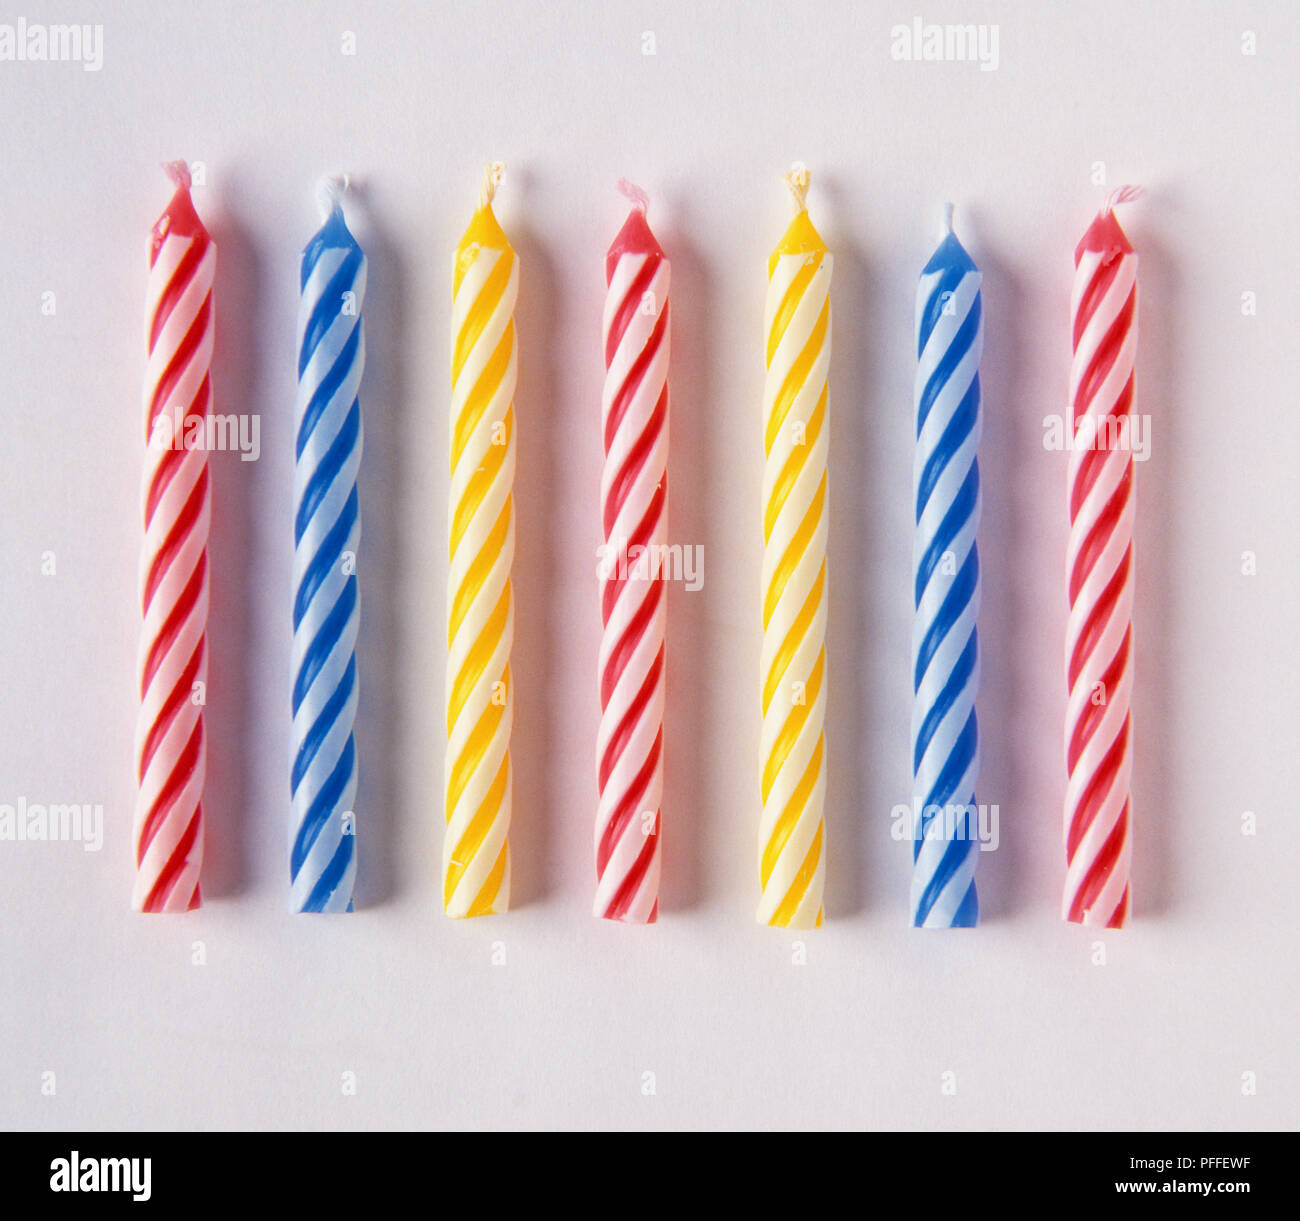 Seven small birthday cake candles. - Stock Image